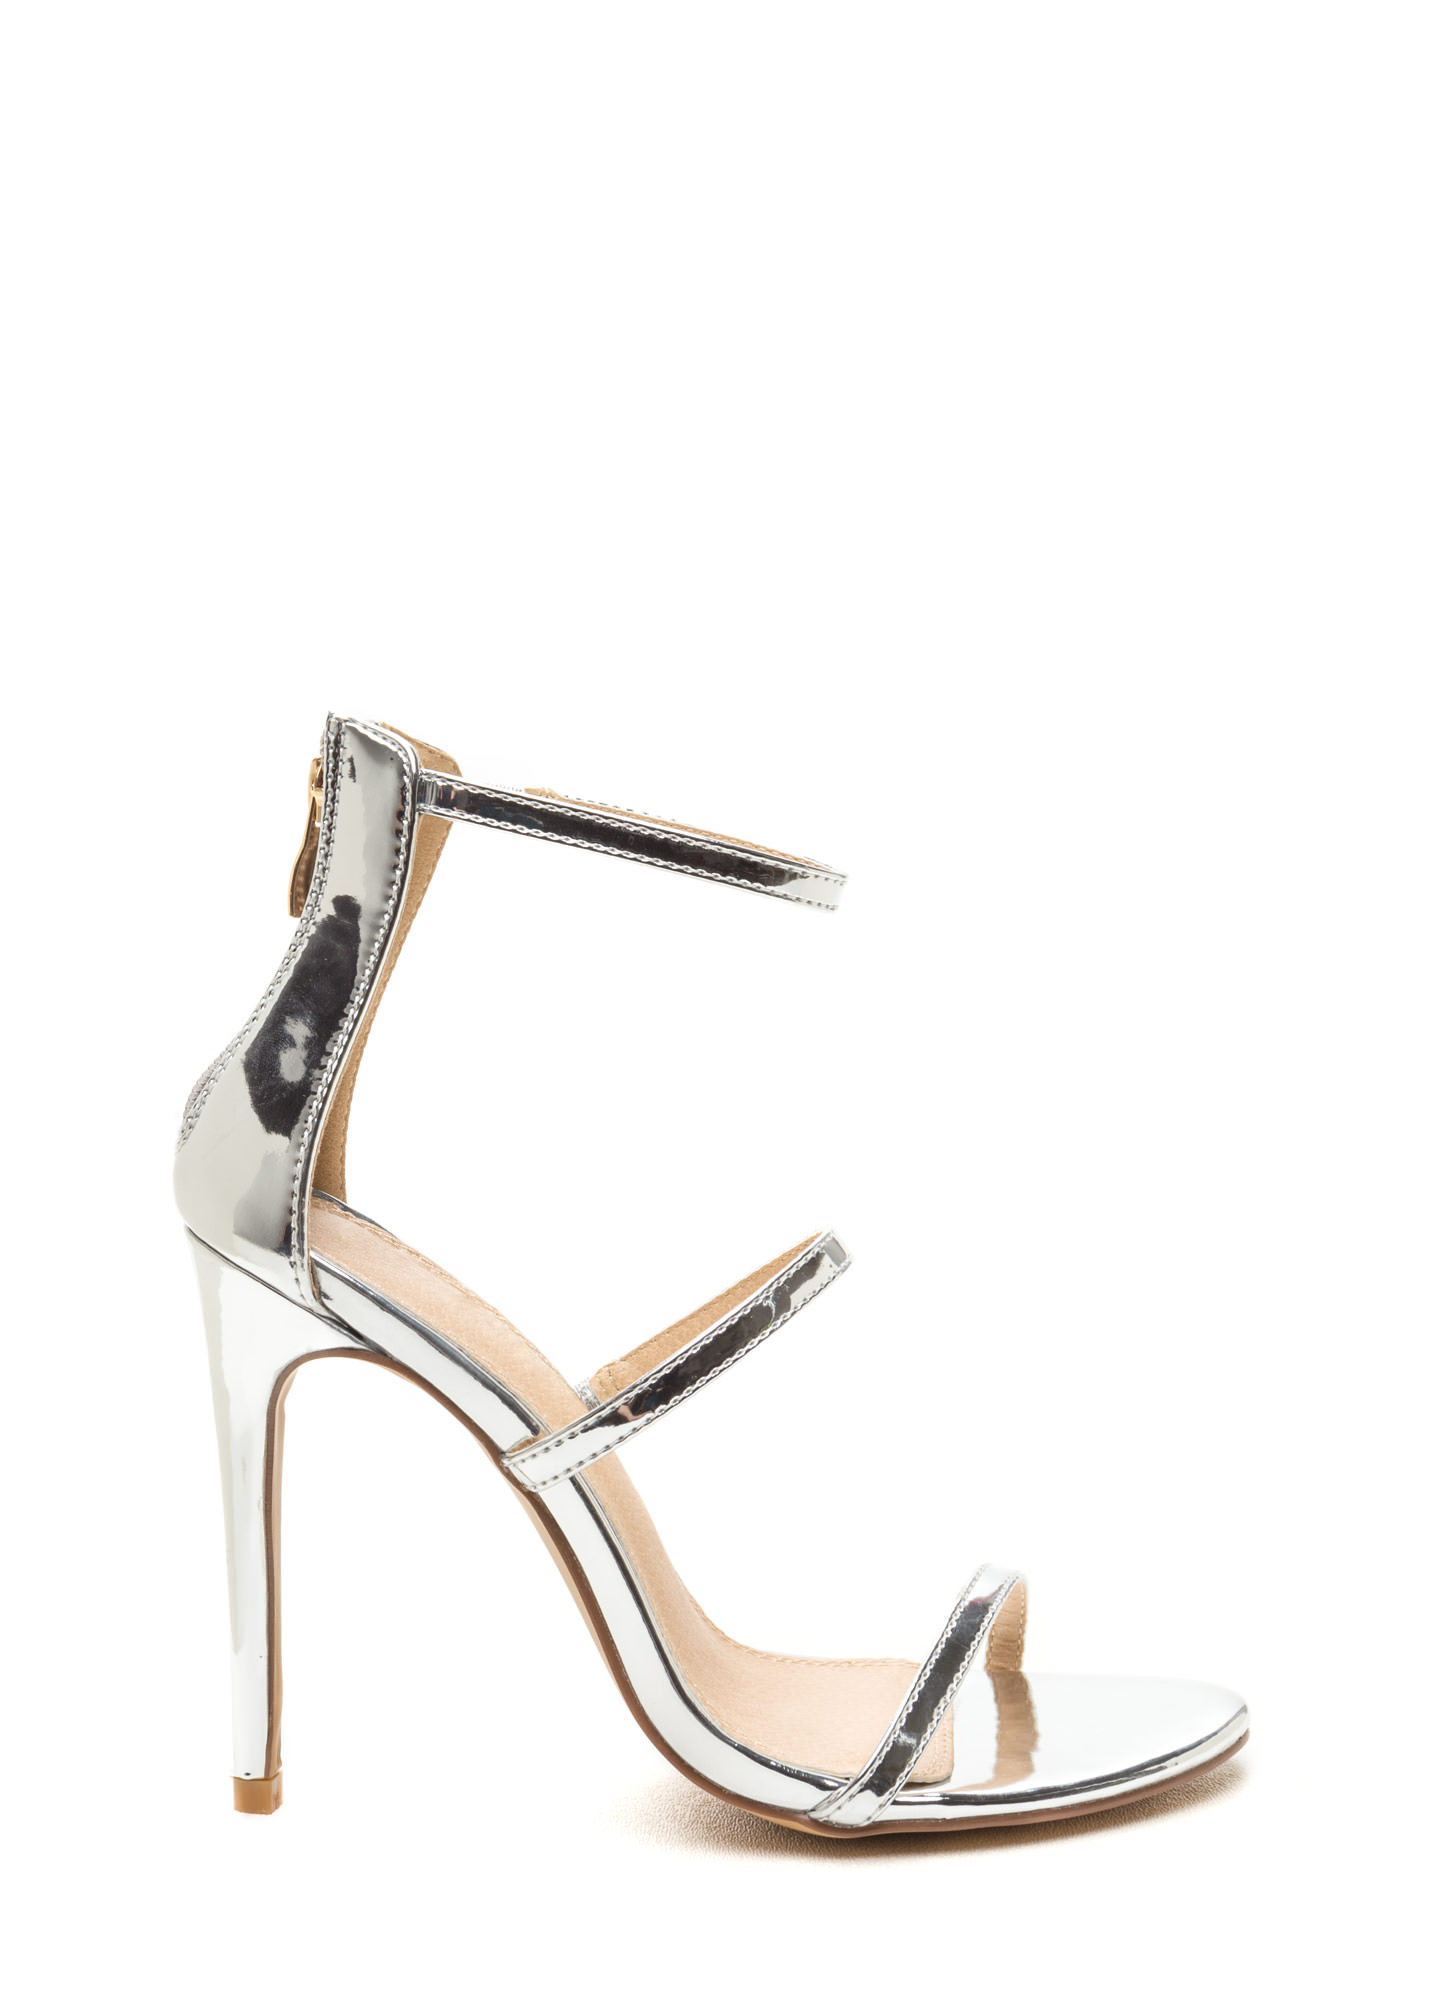 Metallic Strappy Heels - Is Heel